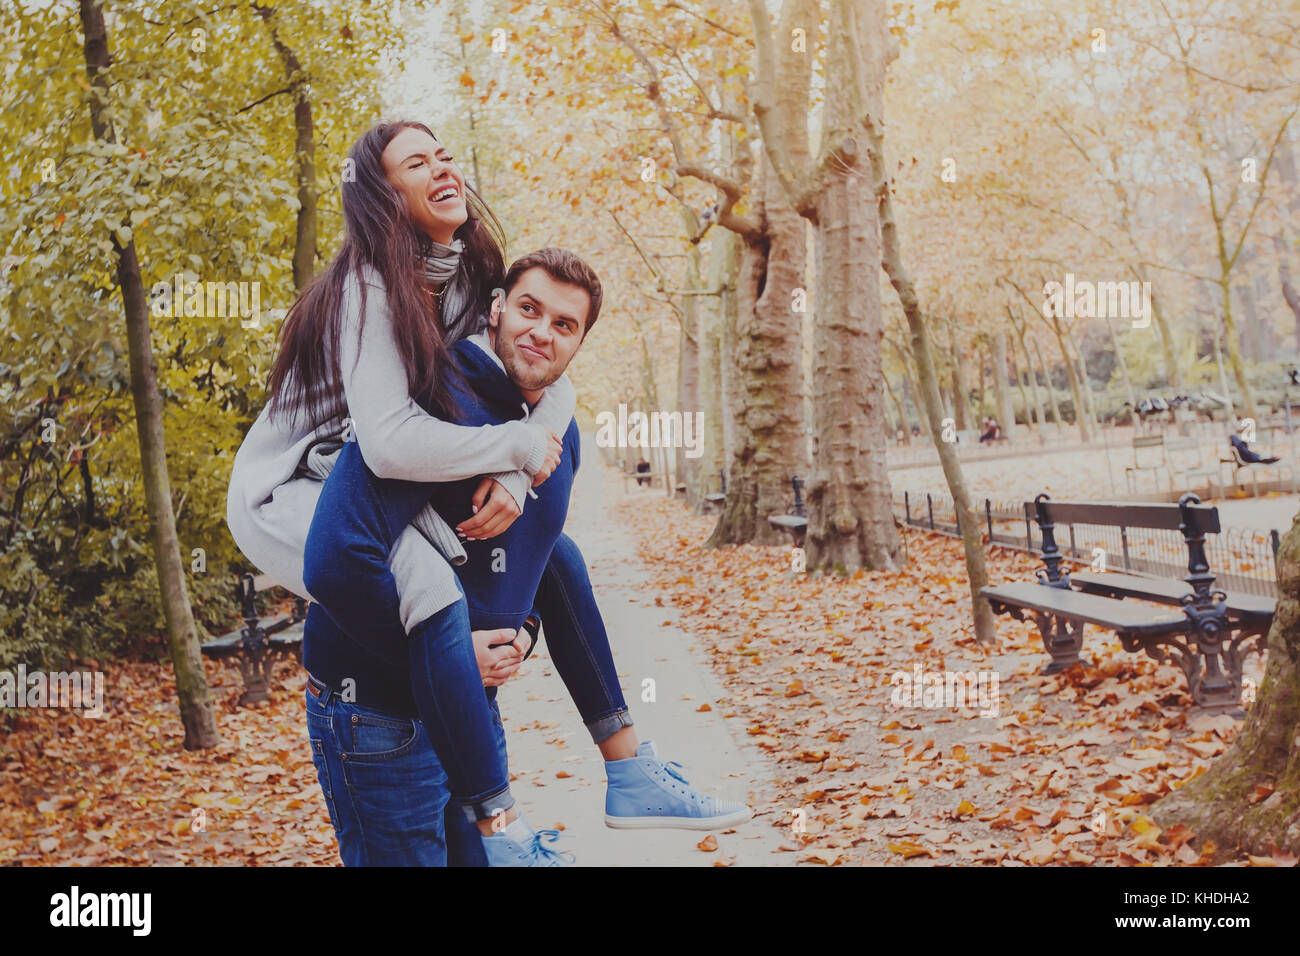 man carrying woman piggyback, dating, young couple laughing in autumn park - Stock Image